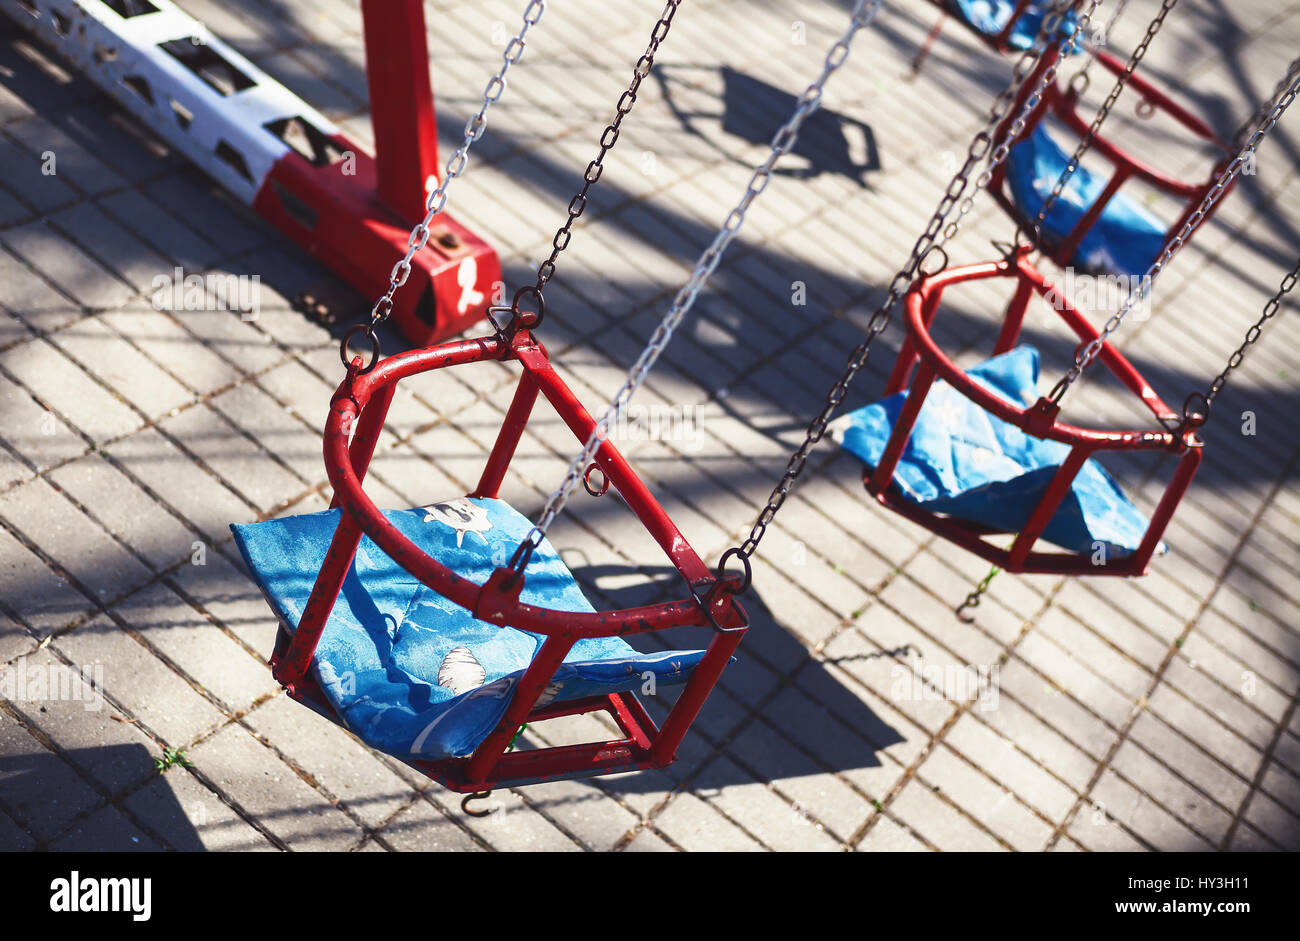 Red carousel seats, during spring sunny day. Stock Photo